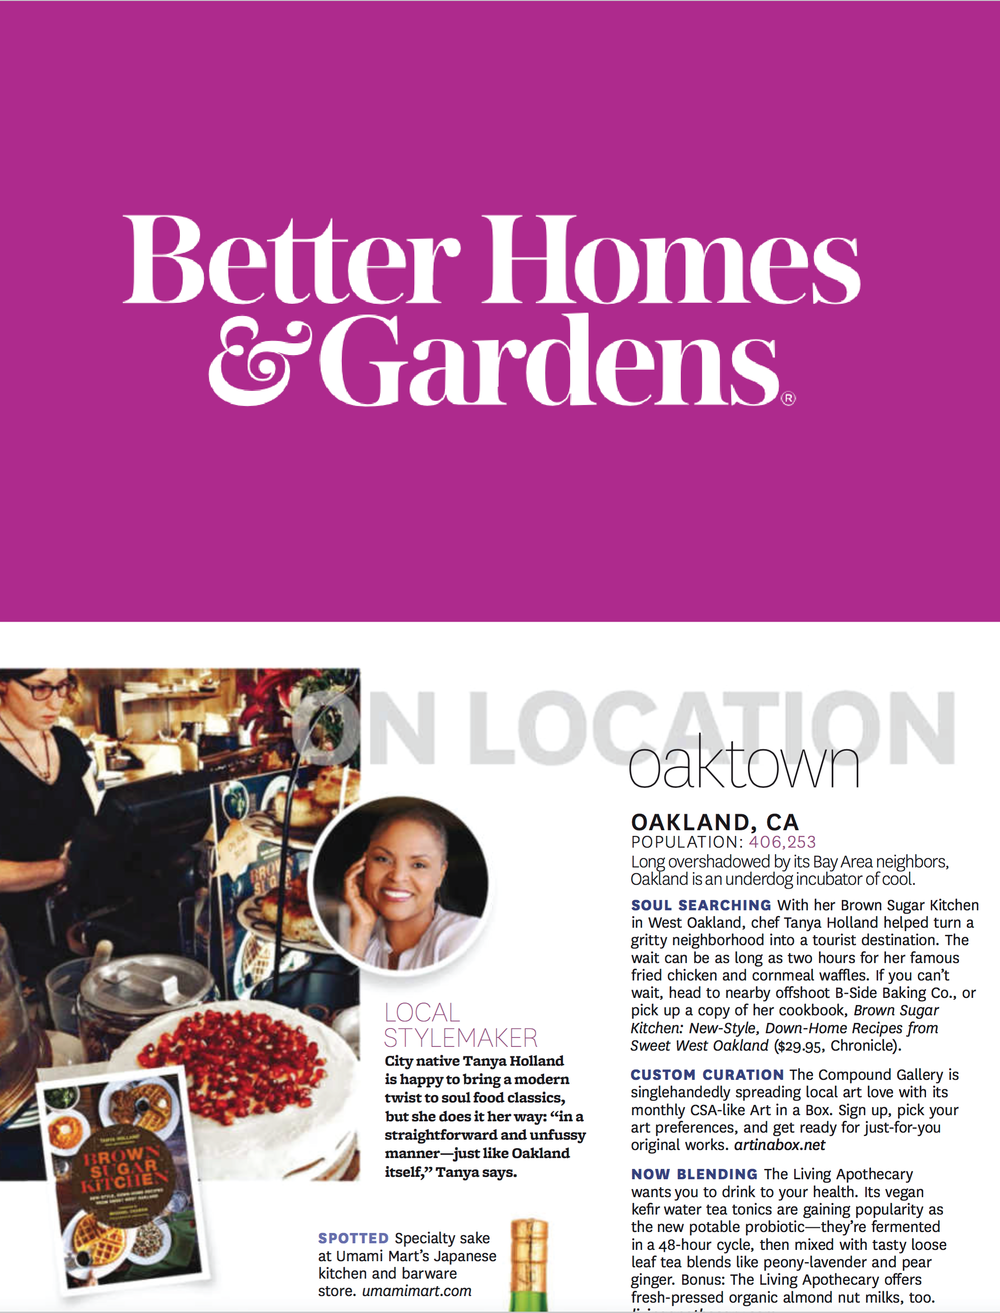 Better Homes & Gardens, On Location Local Stylemaker